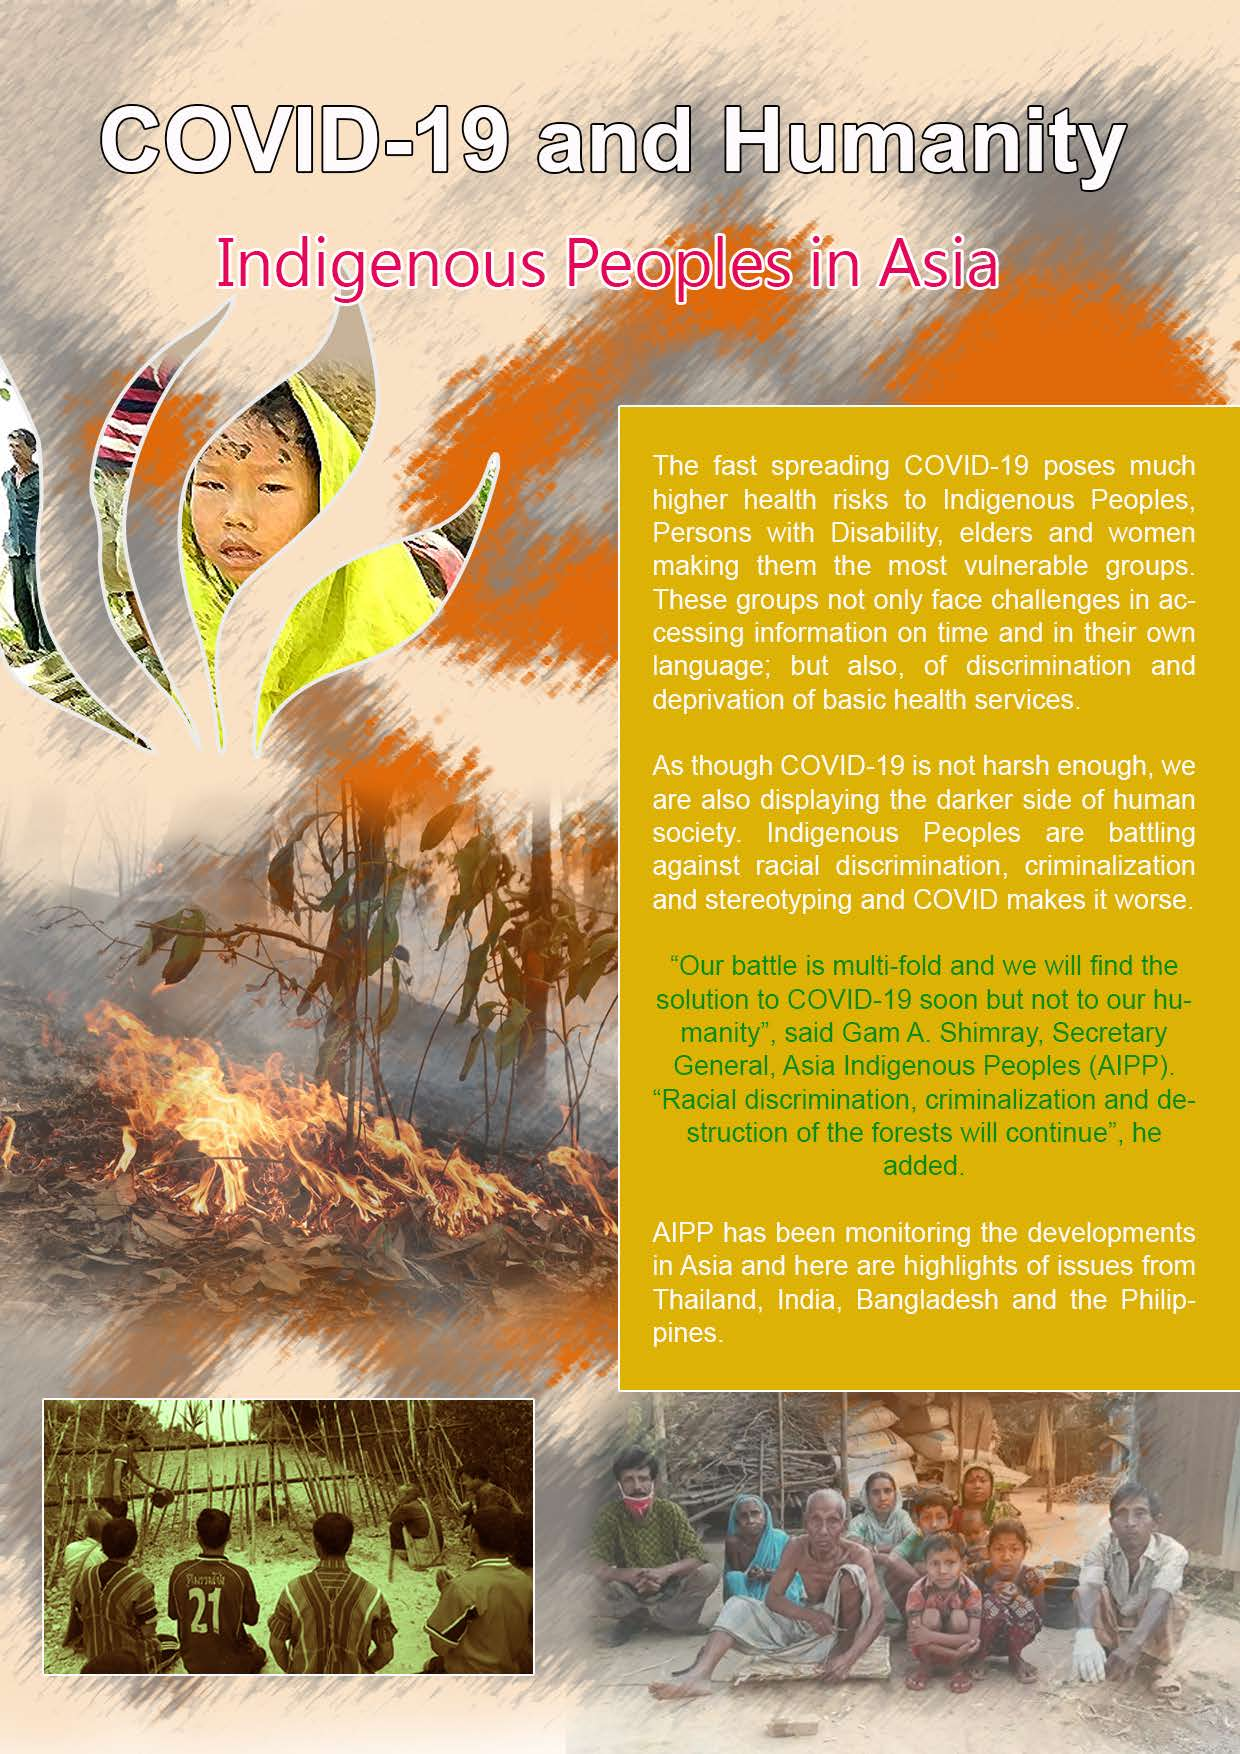 COVID-19 and Humanity: Indigenous Peoples in Asia